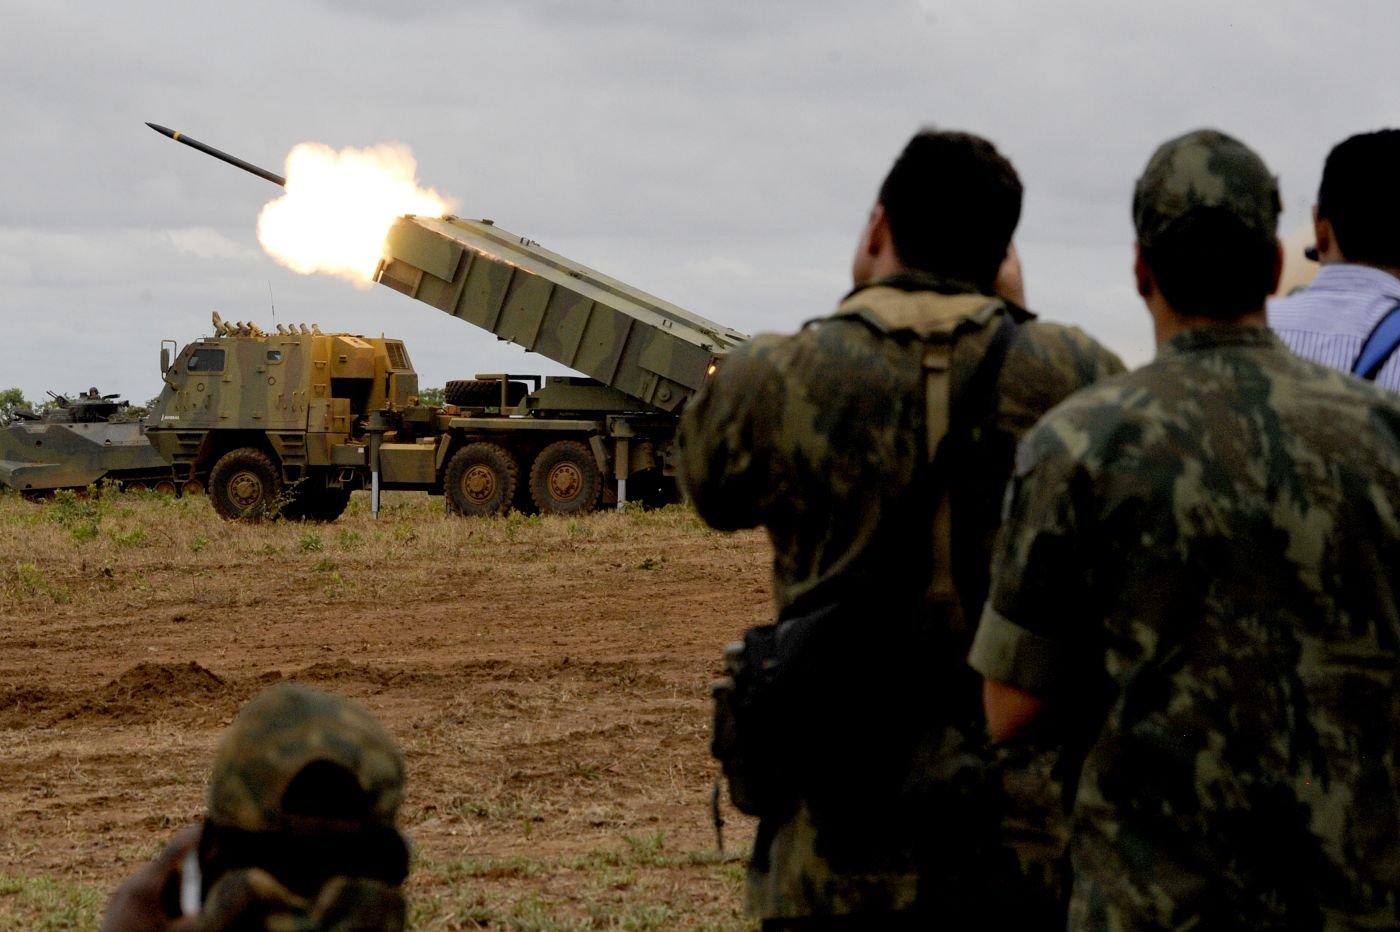 Brazilian Navy tests new rocket launcher during its Operation Formosa